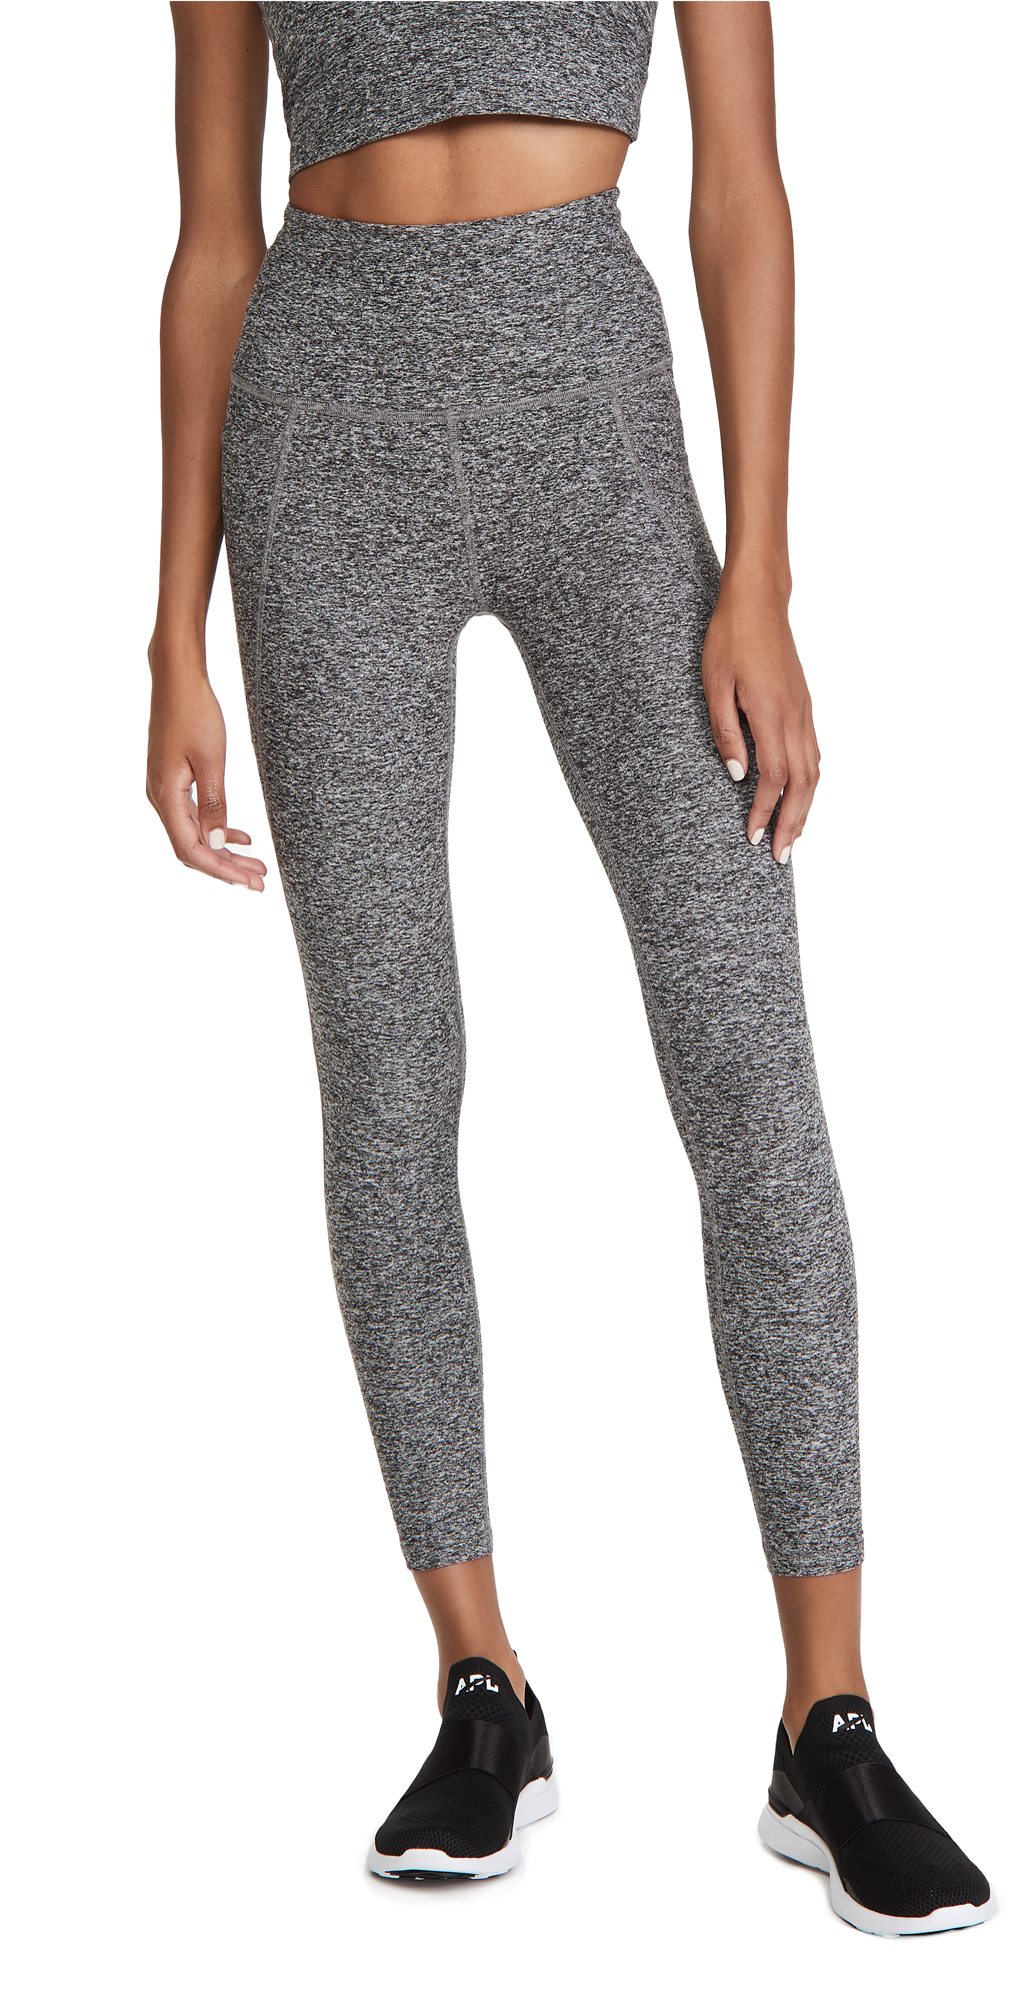 Beyond Yoga Out Of Pocket High Waisted Midi Leggings